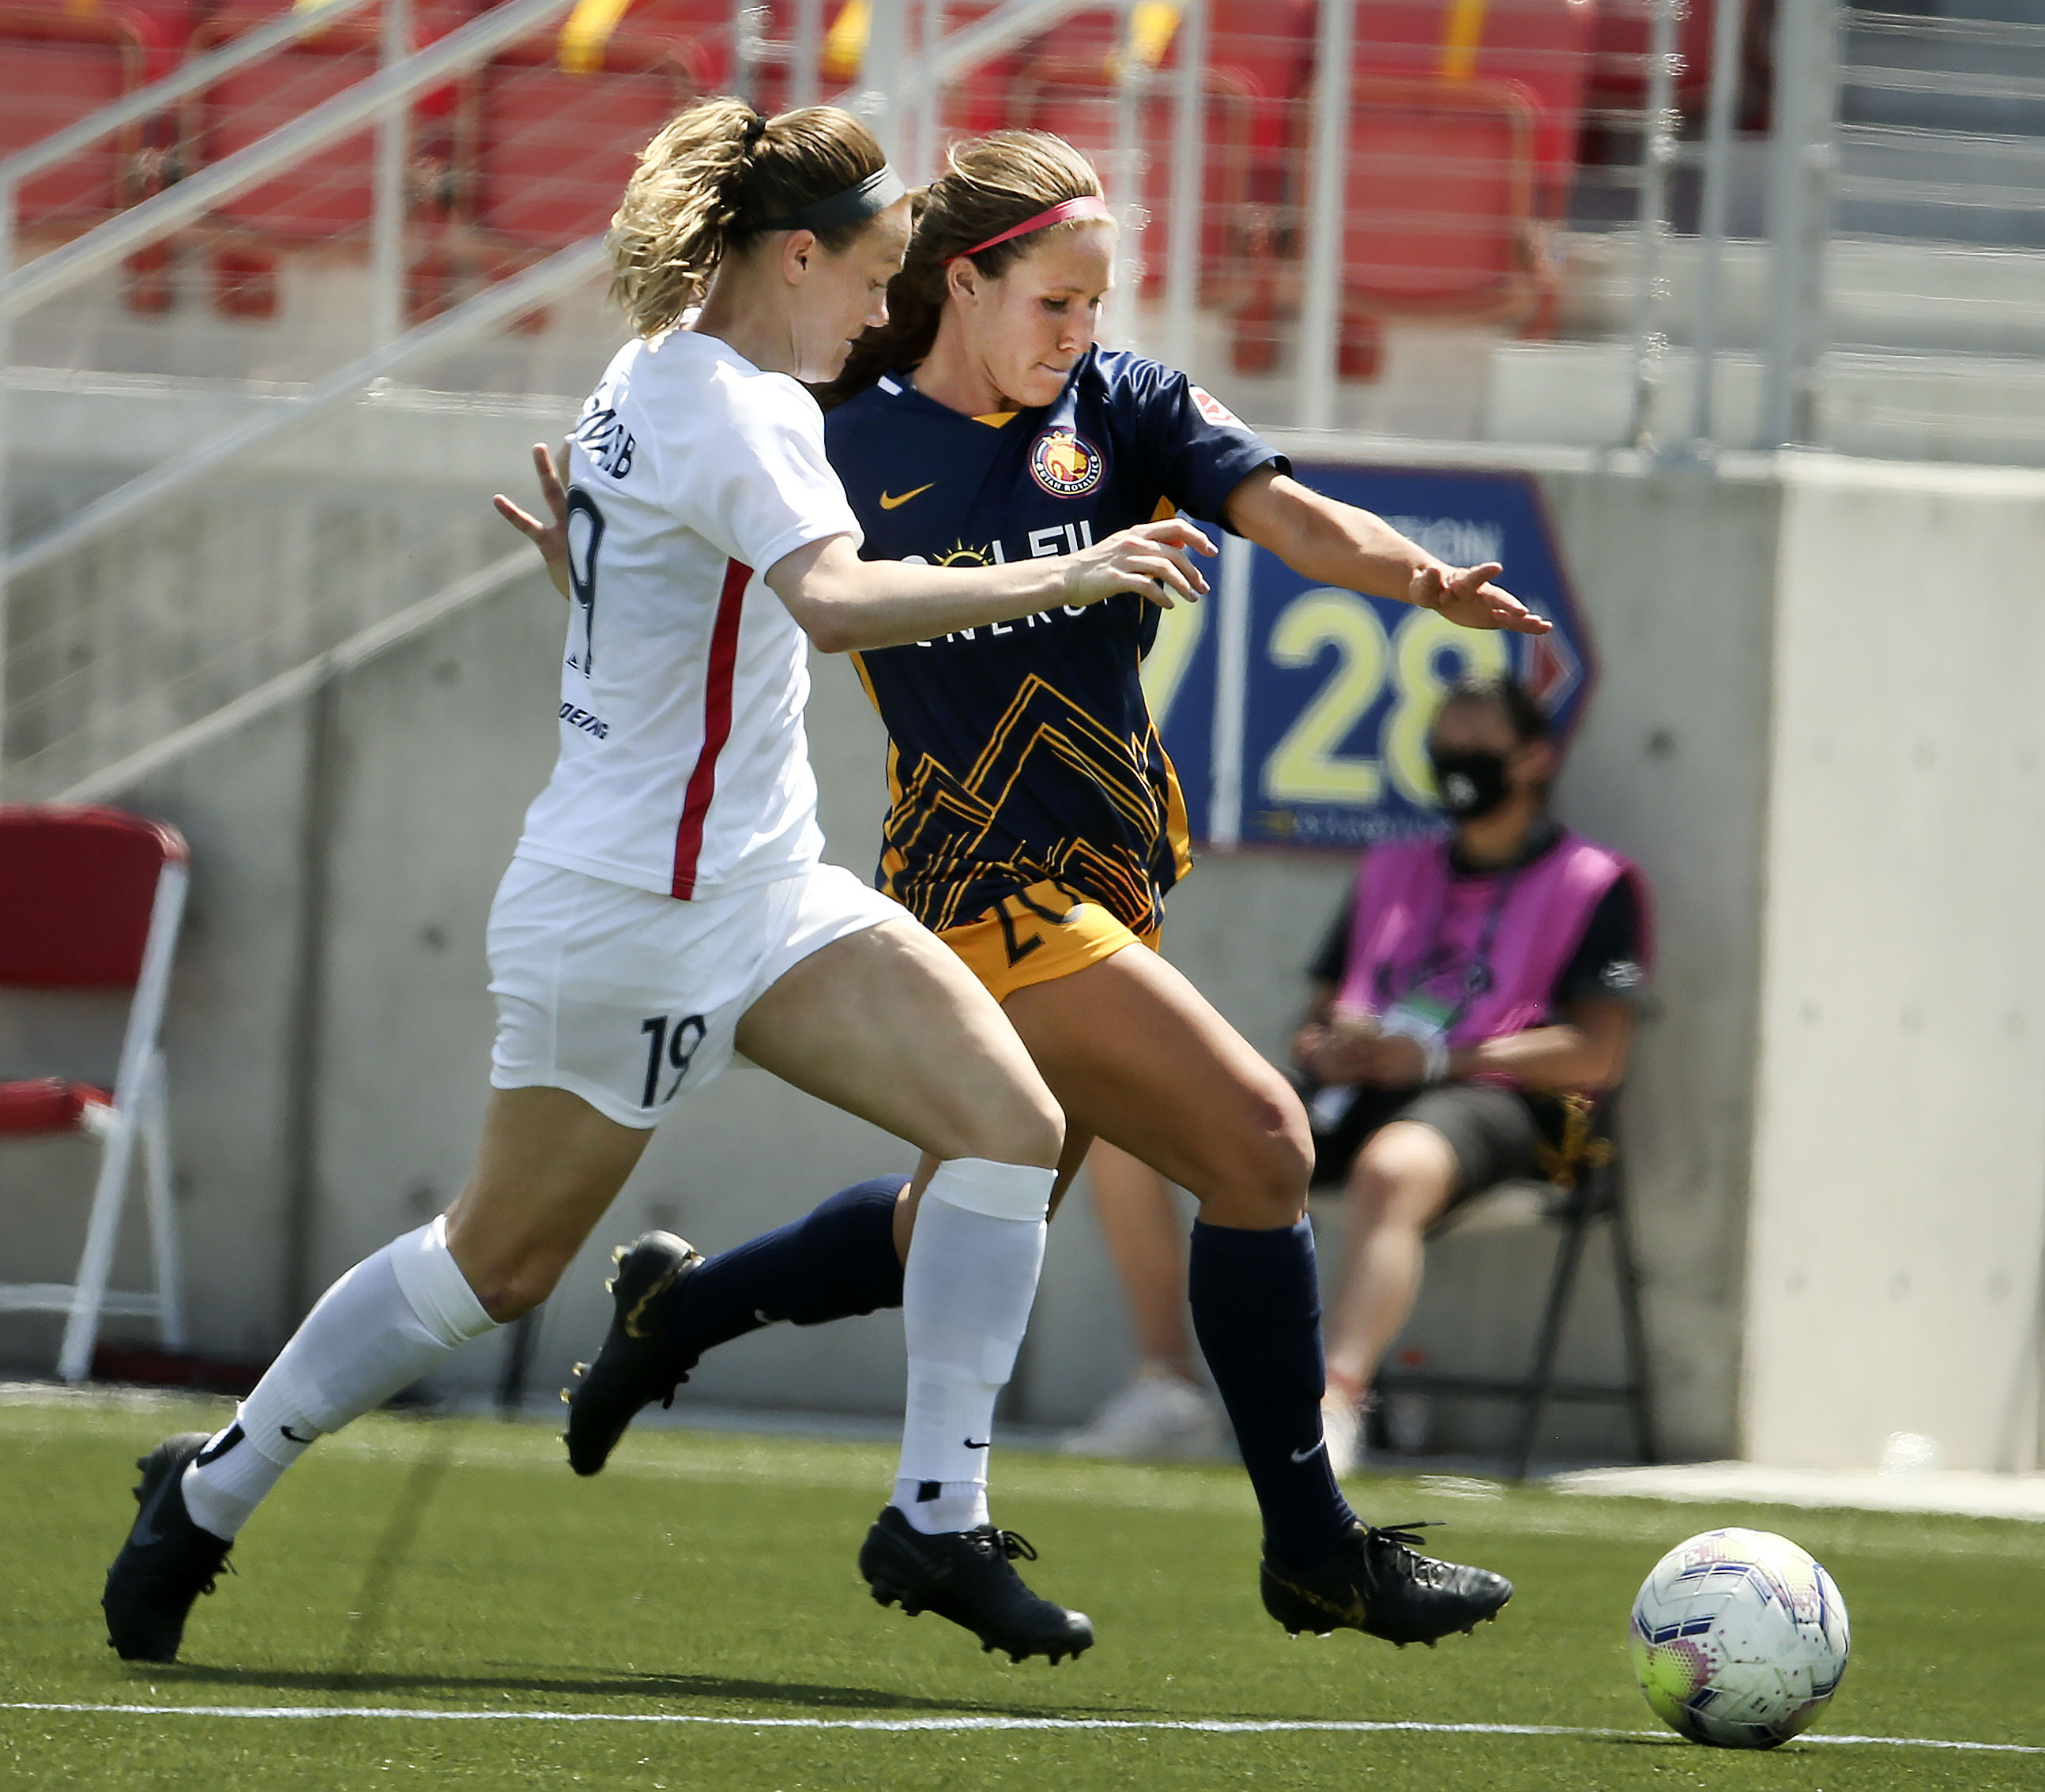 OL Reign player Kristen McNabb (19) and Utah Royals player Mallory Weber (20) compete for the ball in a 2020 NWSL Challenge Cup game at Zions Bank Stadium in Herriman on Wednesday, July 8, 2020.